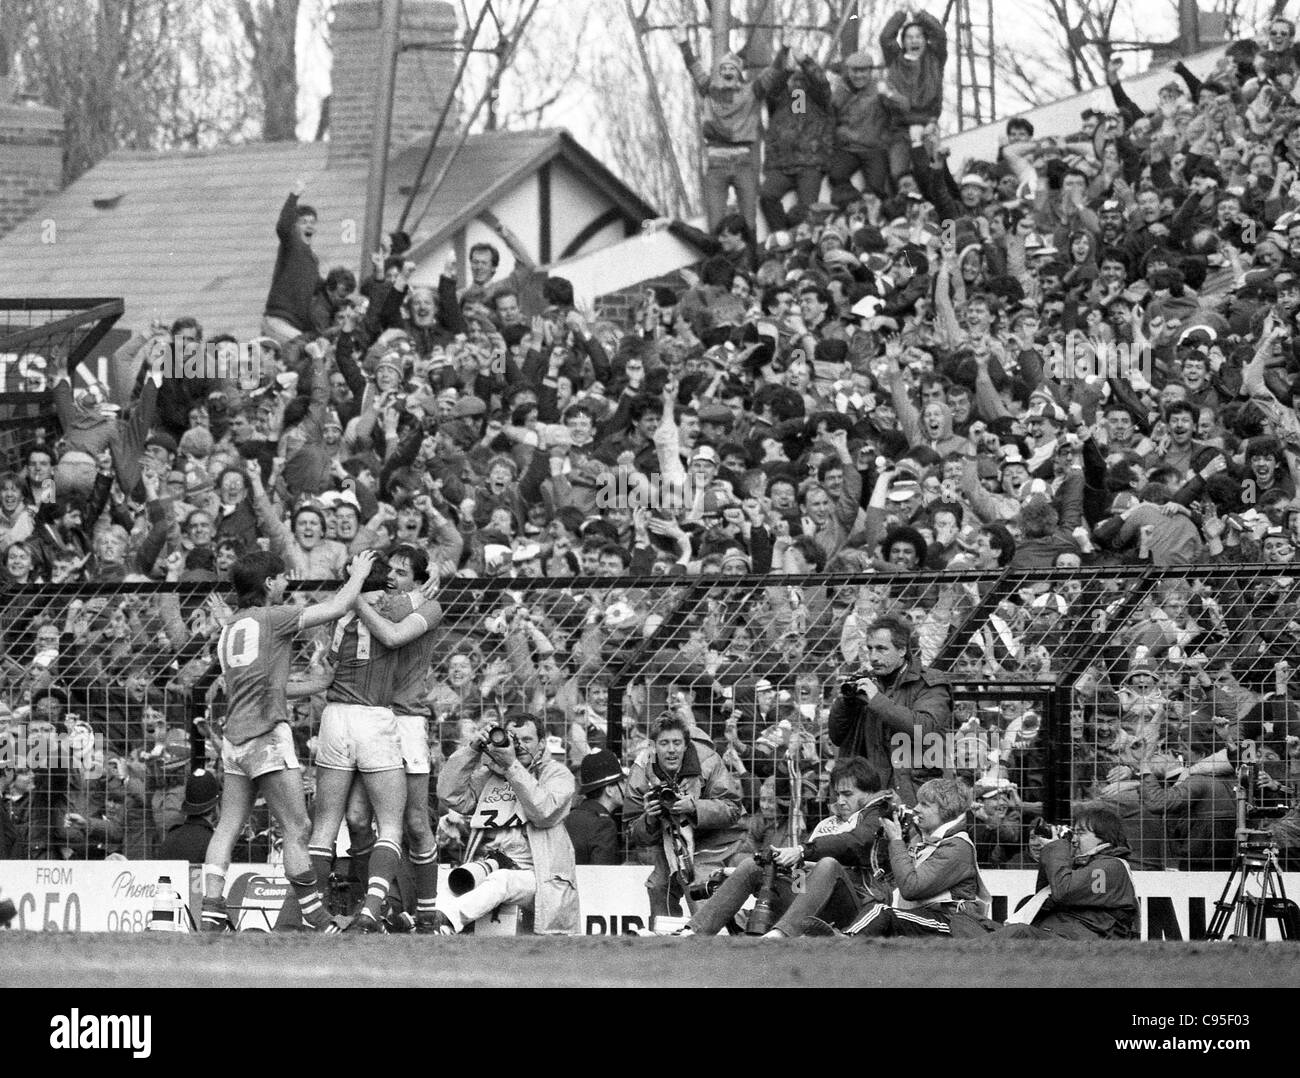 Everton V Luton Town FA Cup semi final at Villa Park 13/4/85 Everton players celebrate their winning goal in front Stock Photo